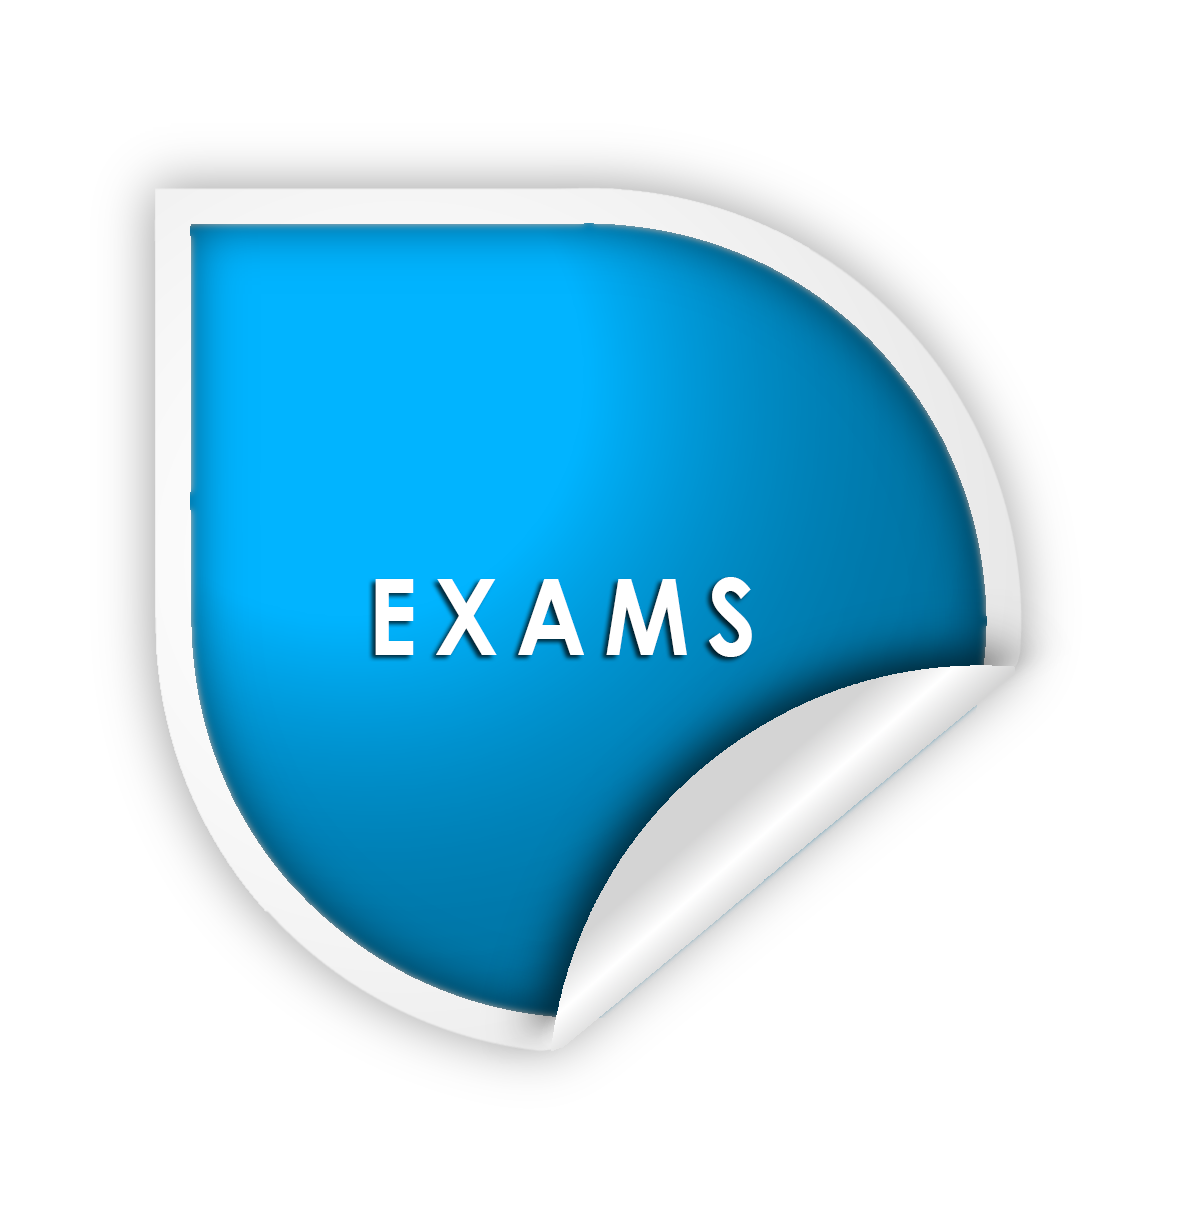 PNG Exam - 64191